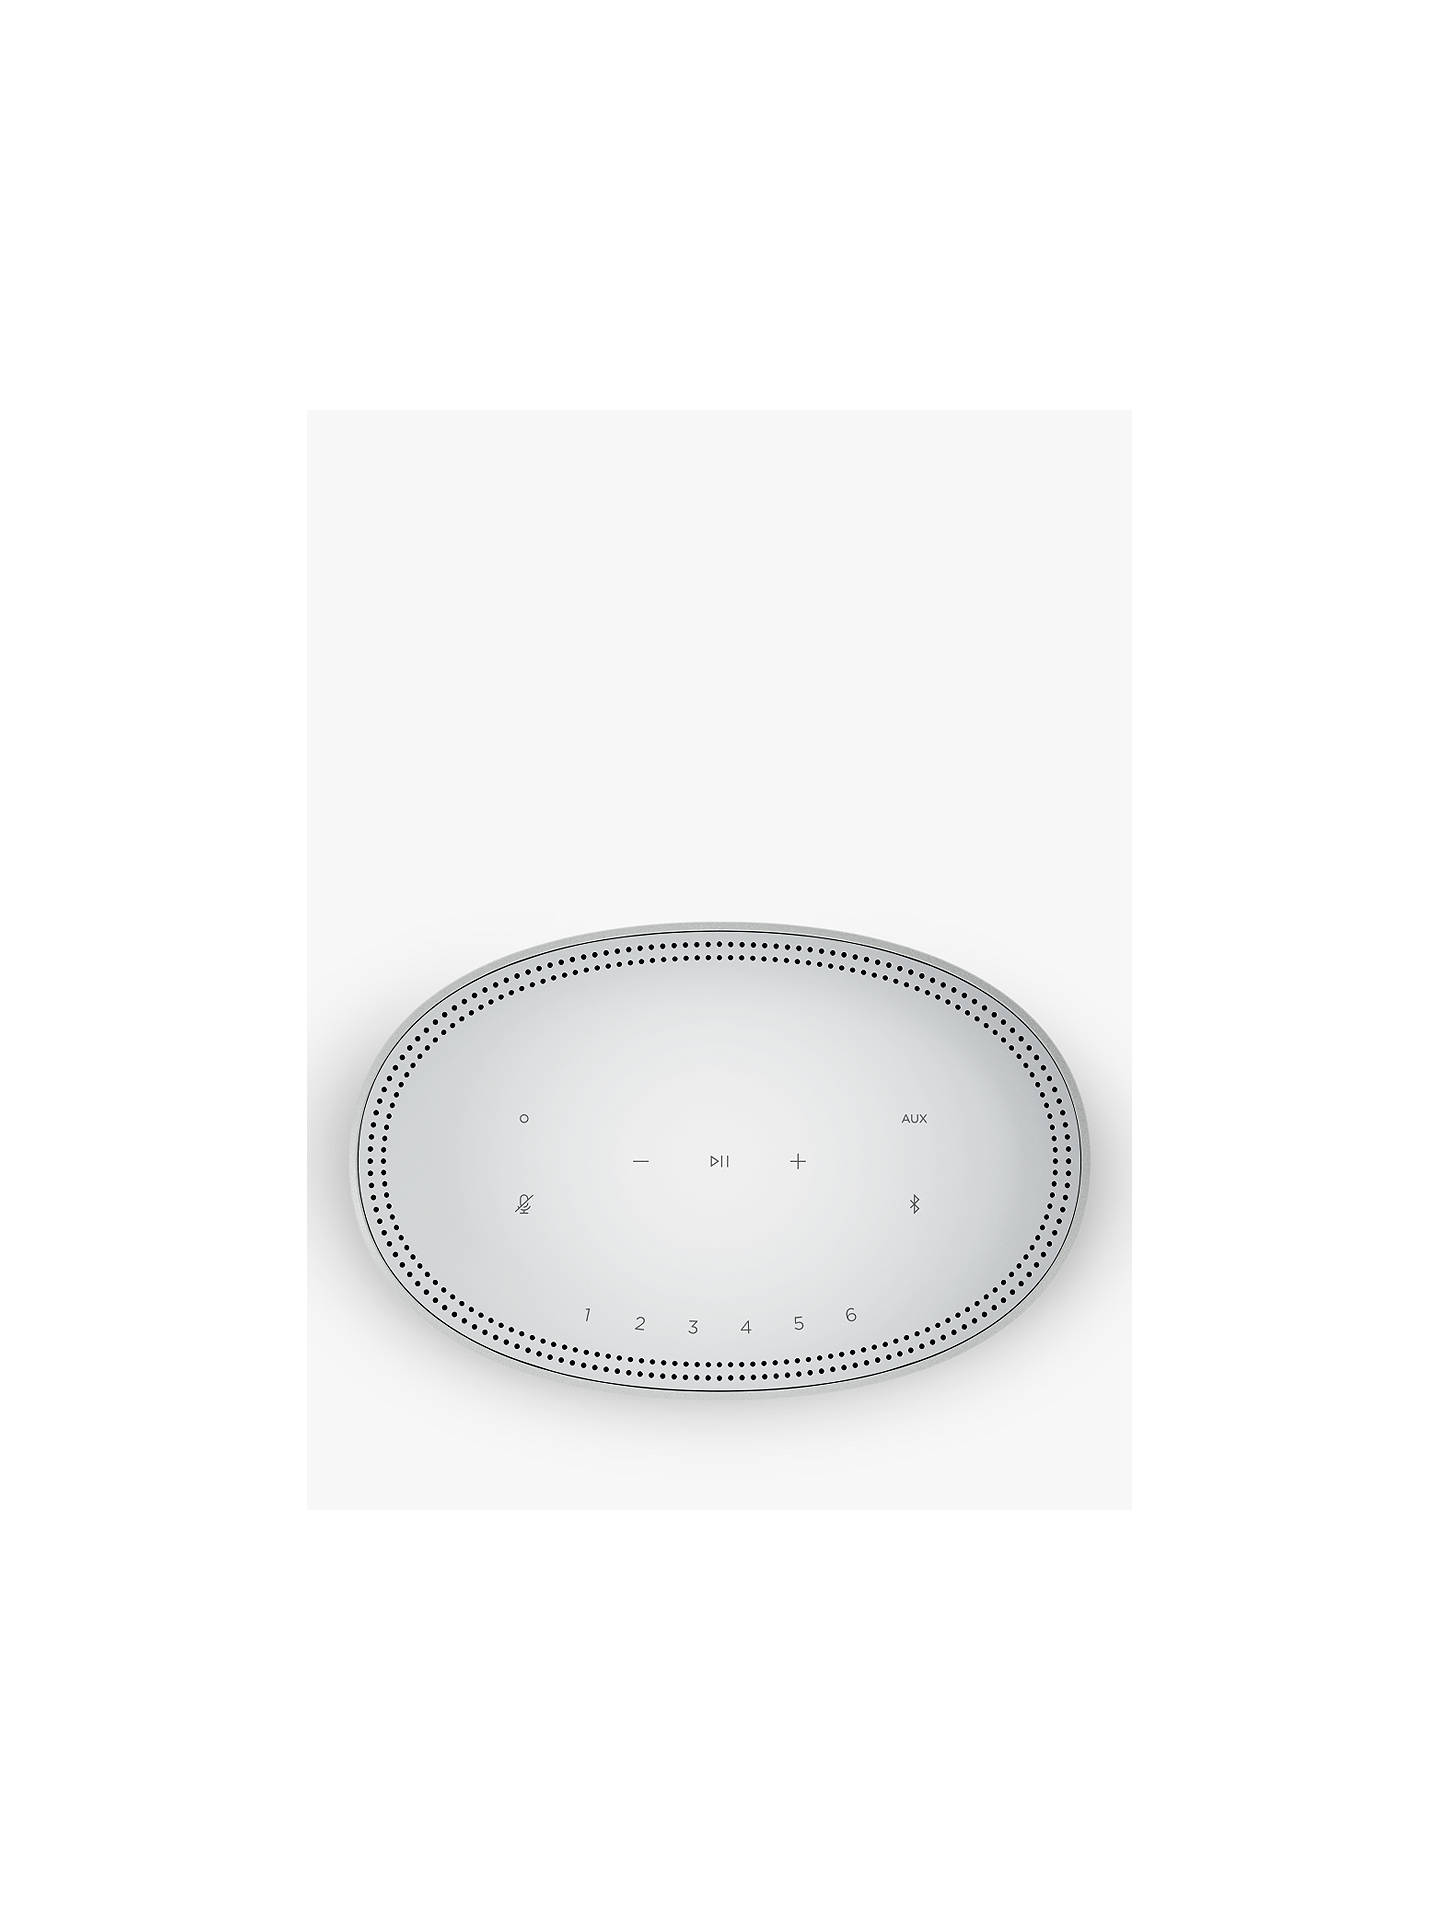 Buy Bose® Home Speaker 500 Smart Speaker with Voice Recognition and Control, Silver Online at johnlewis.com